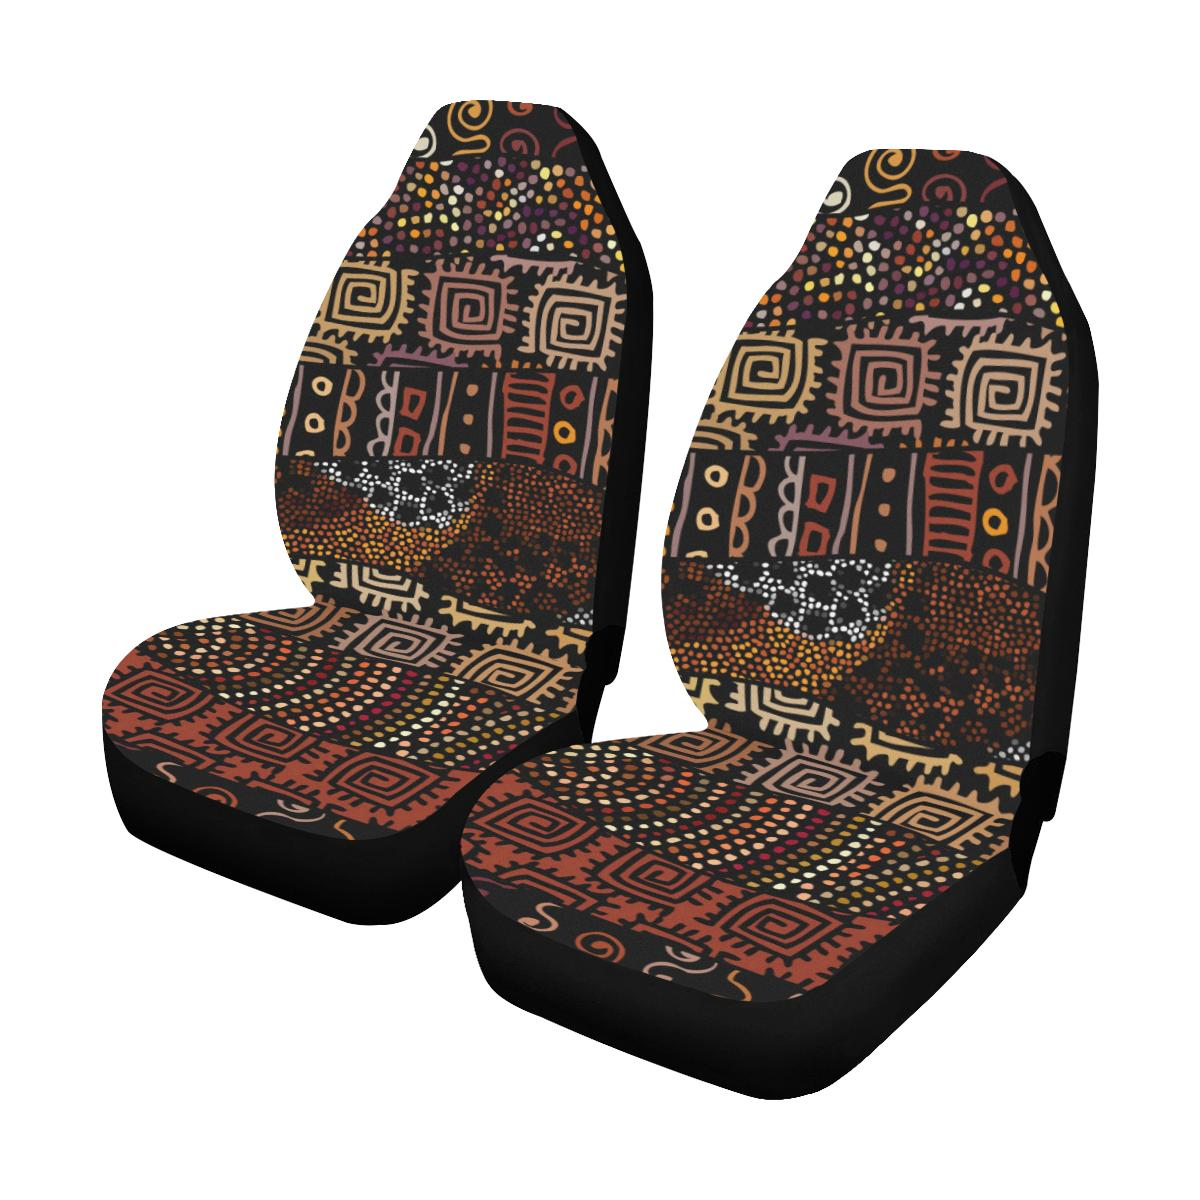 African Pattern Print Design 07 Car Seat Covers (Set of 2)-JORJUNE.COM